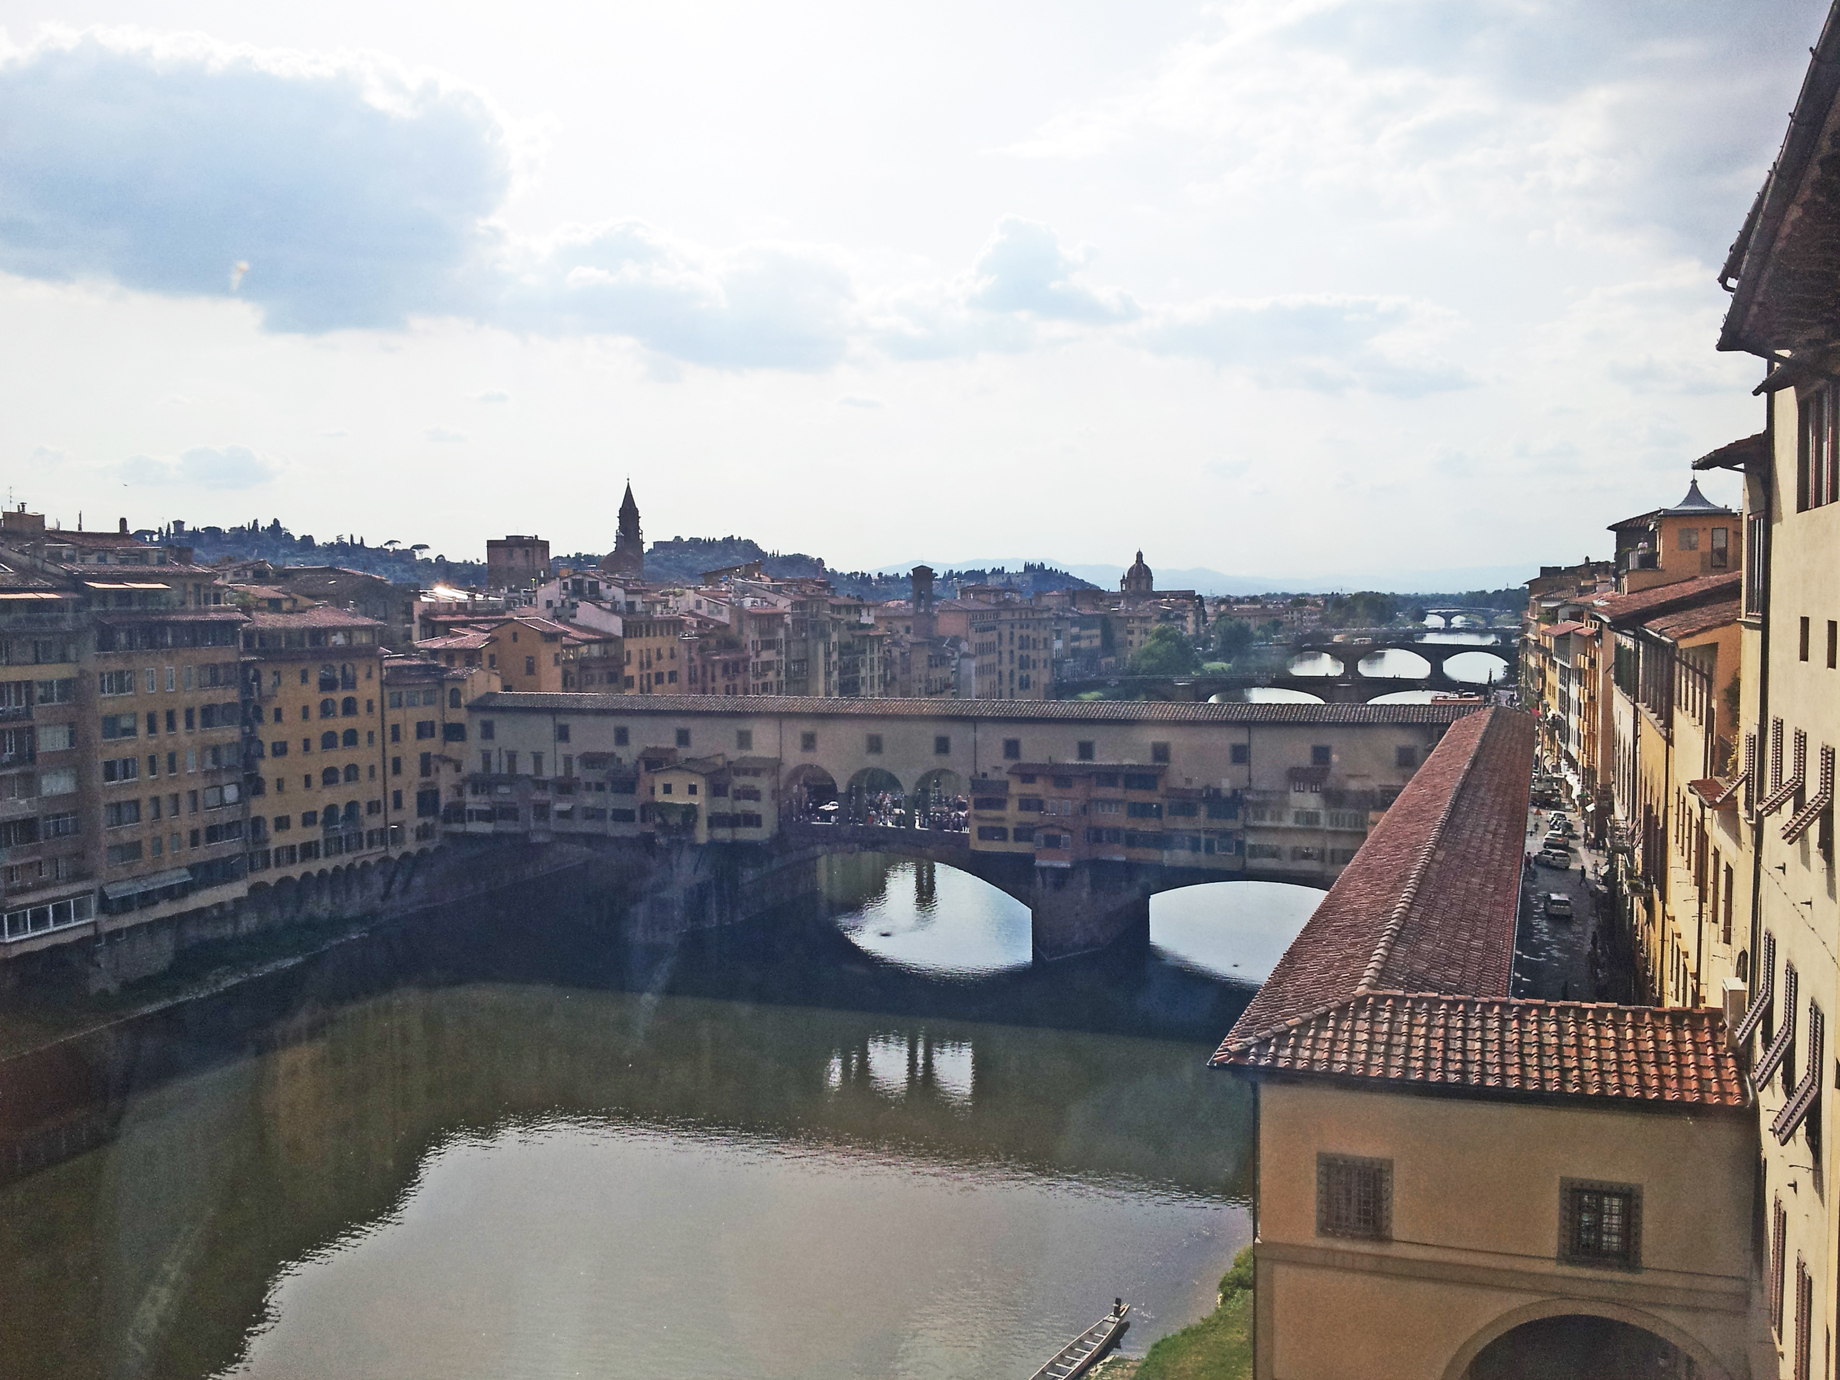 View from the Uffizi, Hitler stood right here in 1938!